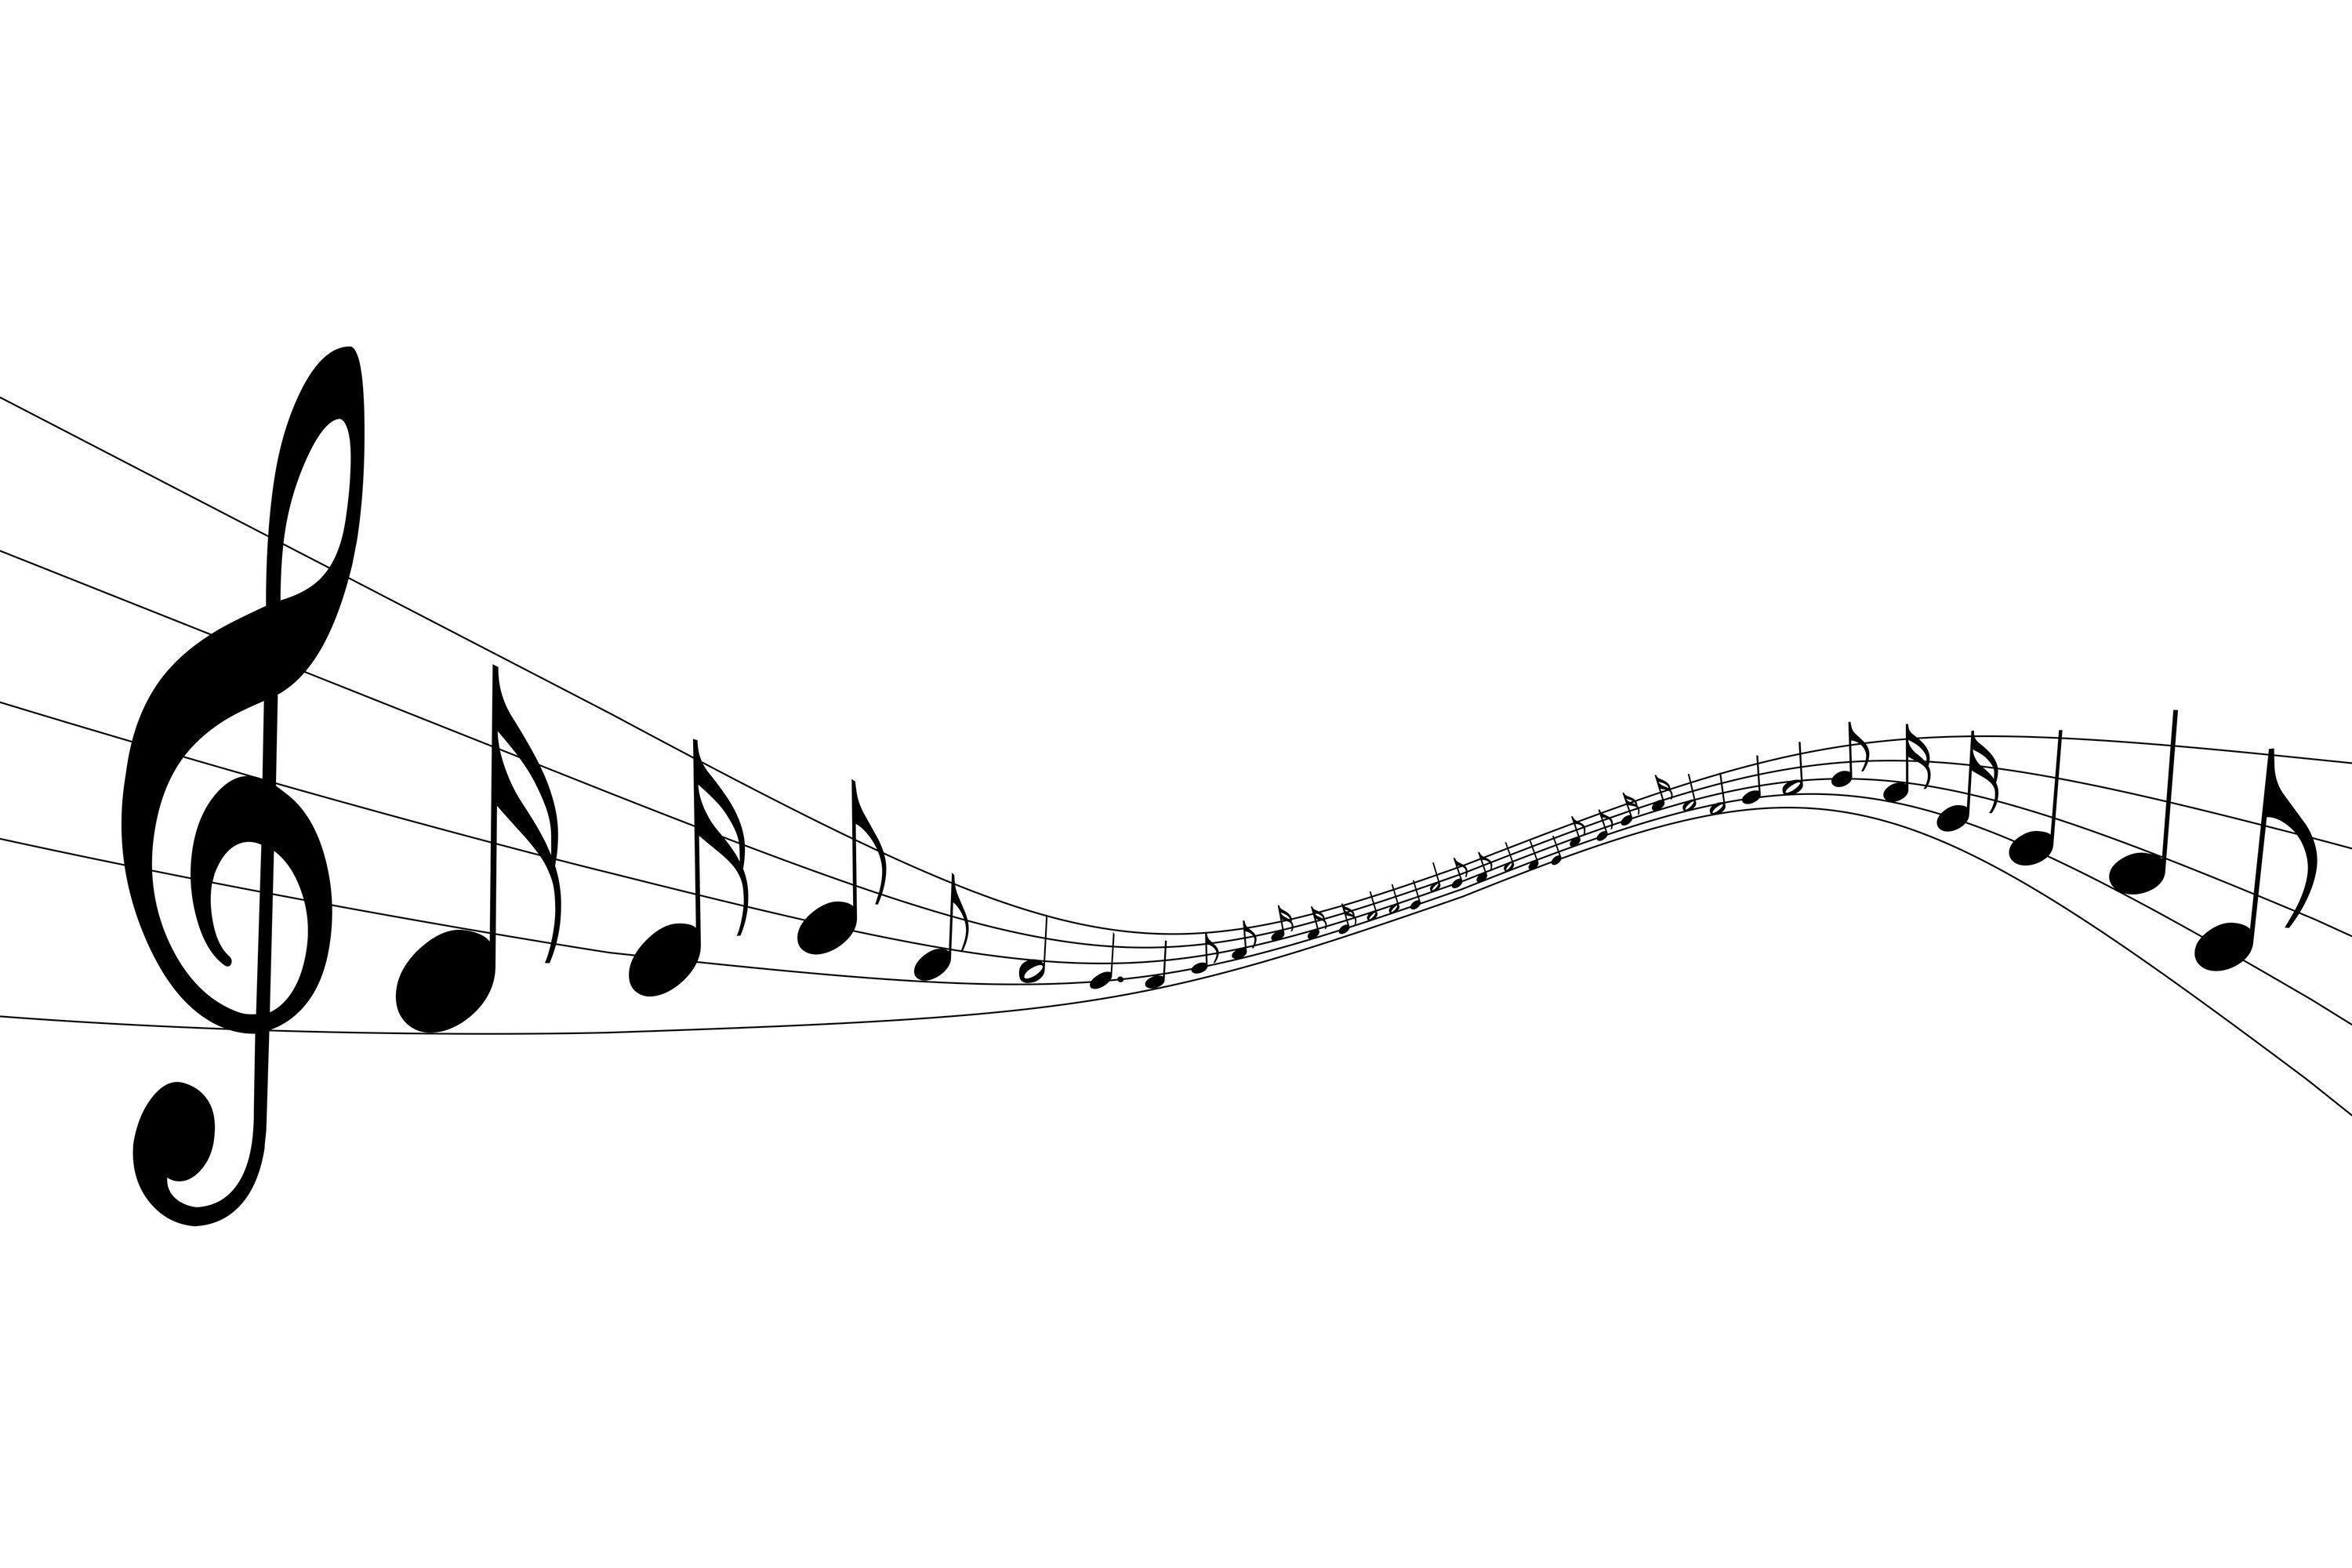 Logos For > Music Note Designs Wallpapers